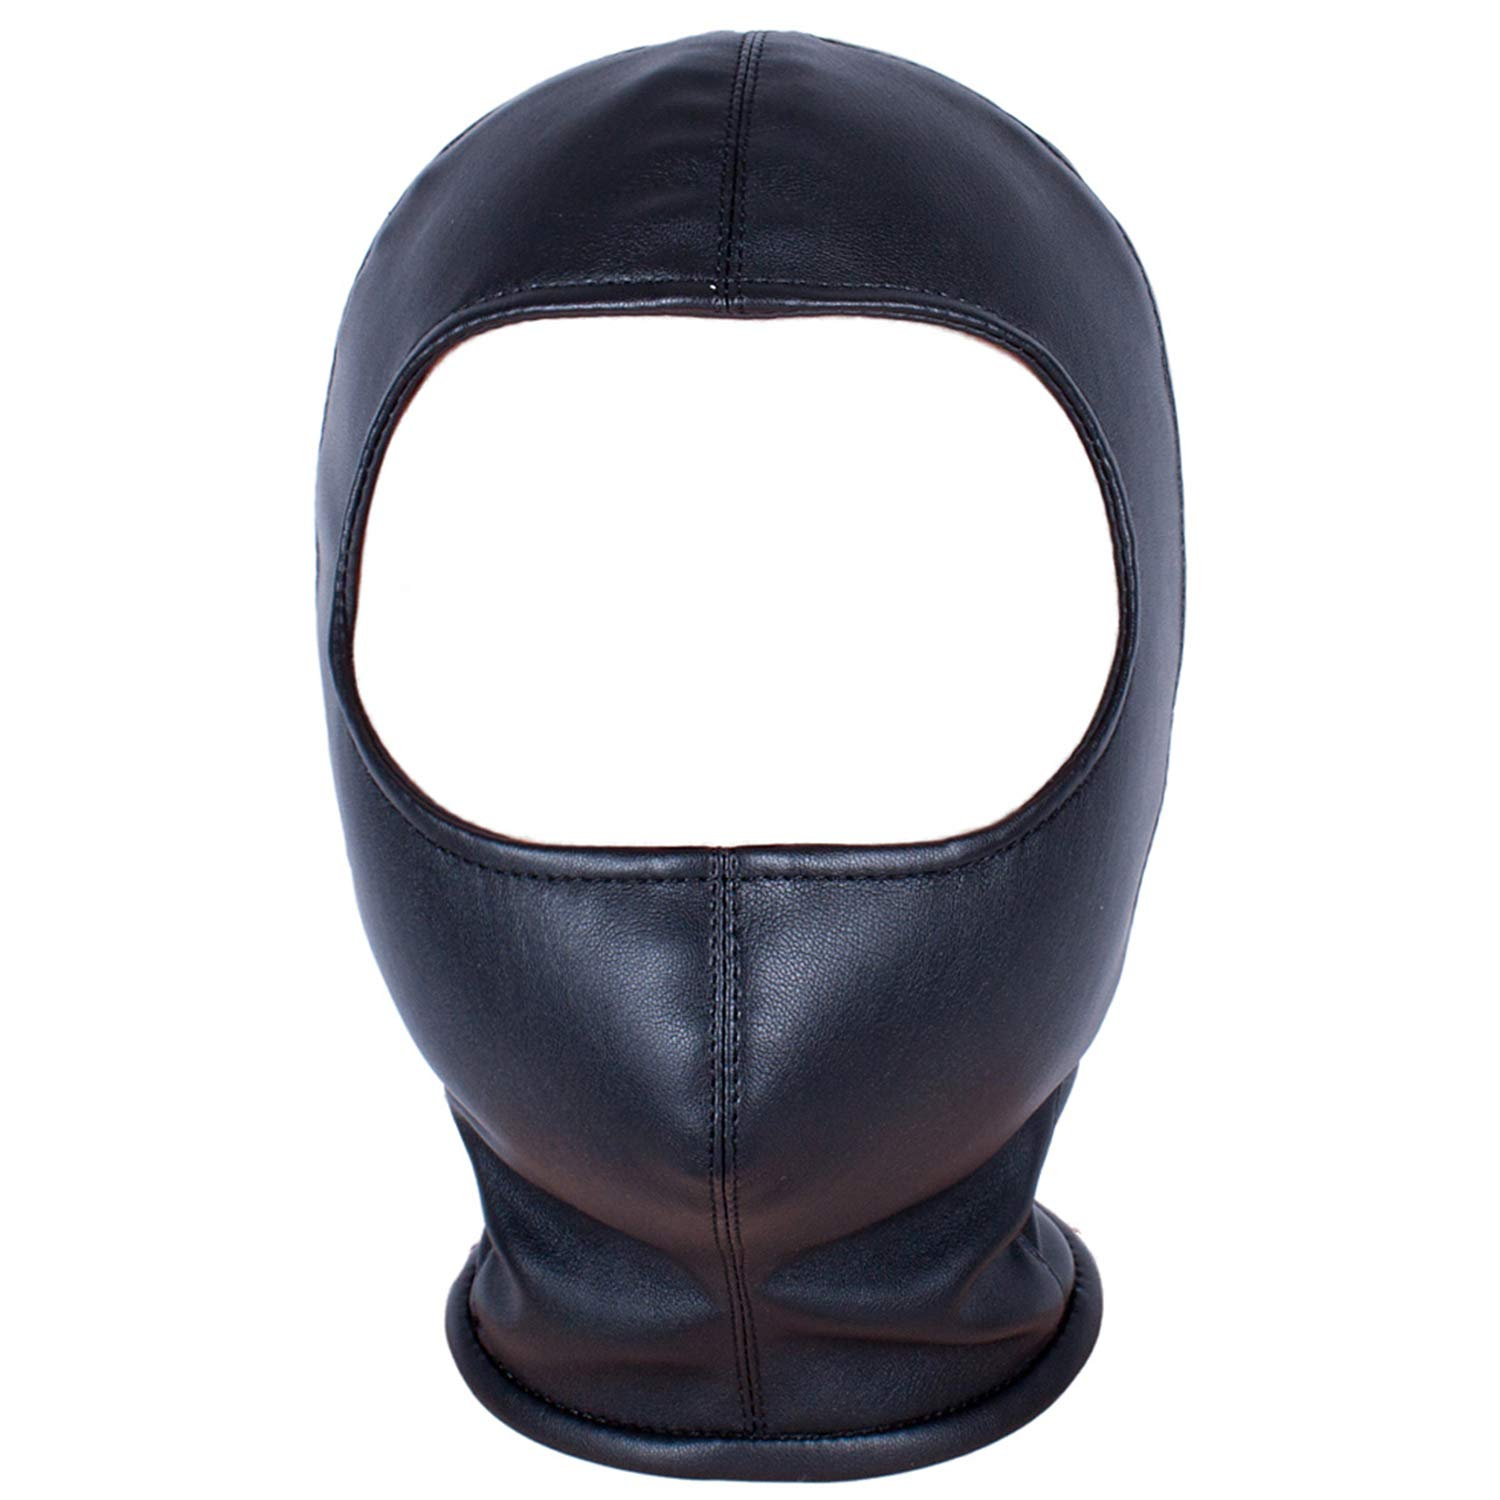 Leather Costume Head Mask Hood - Black Sealed Soft Leather Full Face Mask Nose Holes Breathable Lacing Harness Unisex Cosplay Headgear Mask (Male Size(Head circumference:22.8in-22.6in), Black)